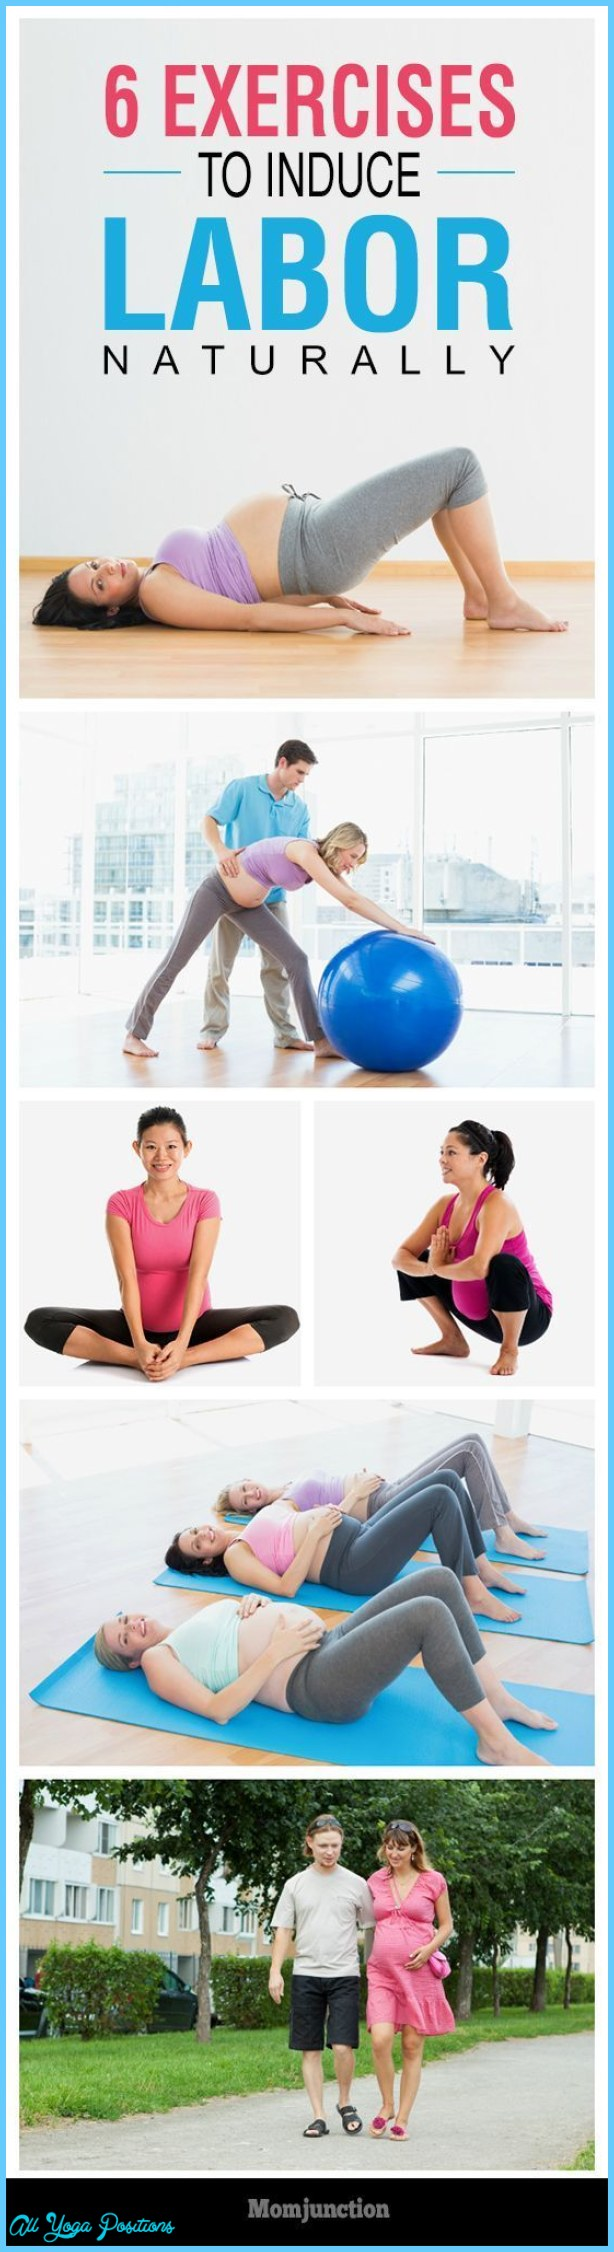 Pregnancy And Exercise Ball_18.jpg